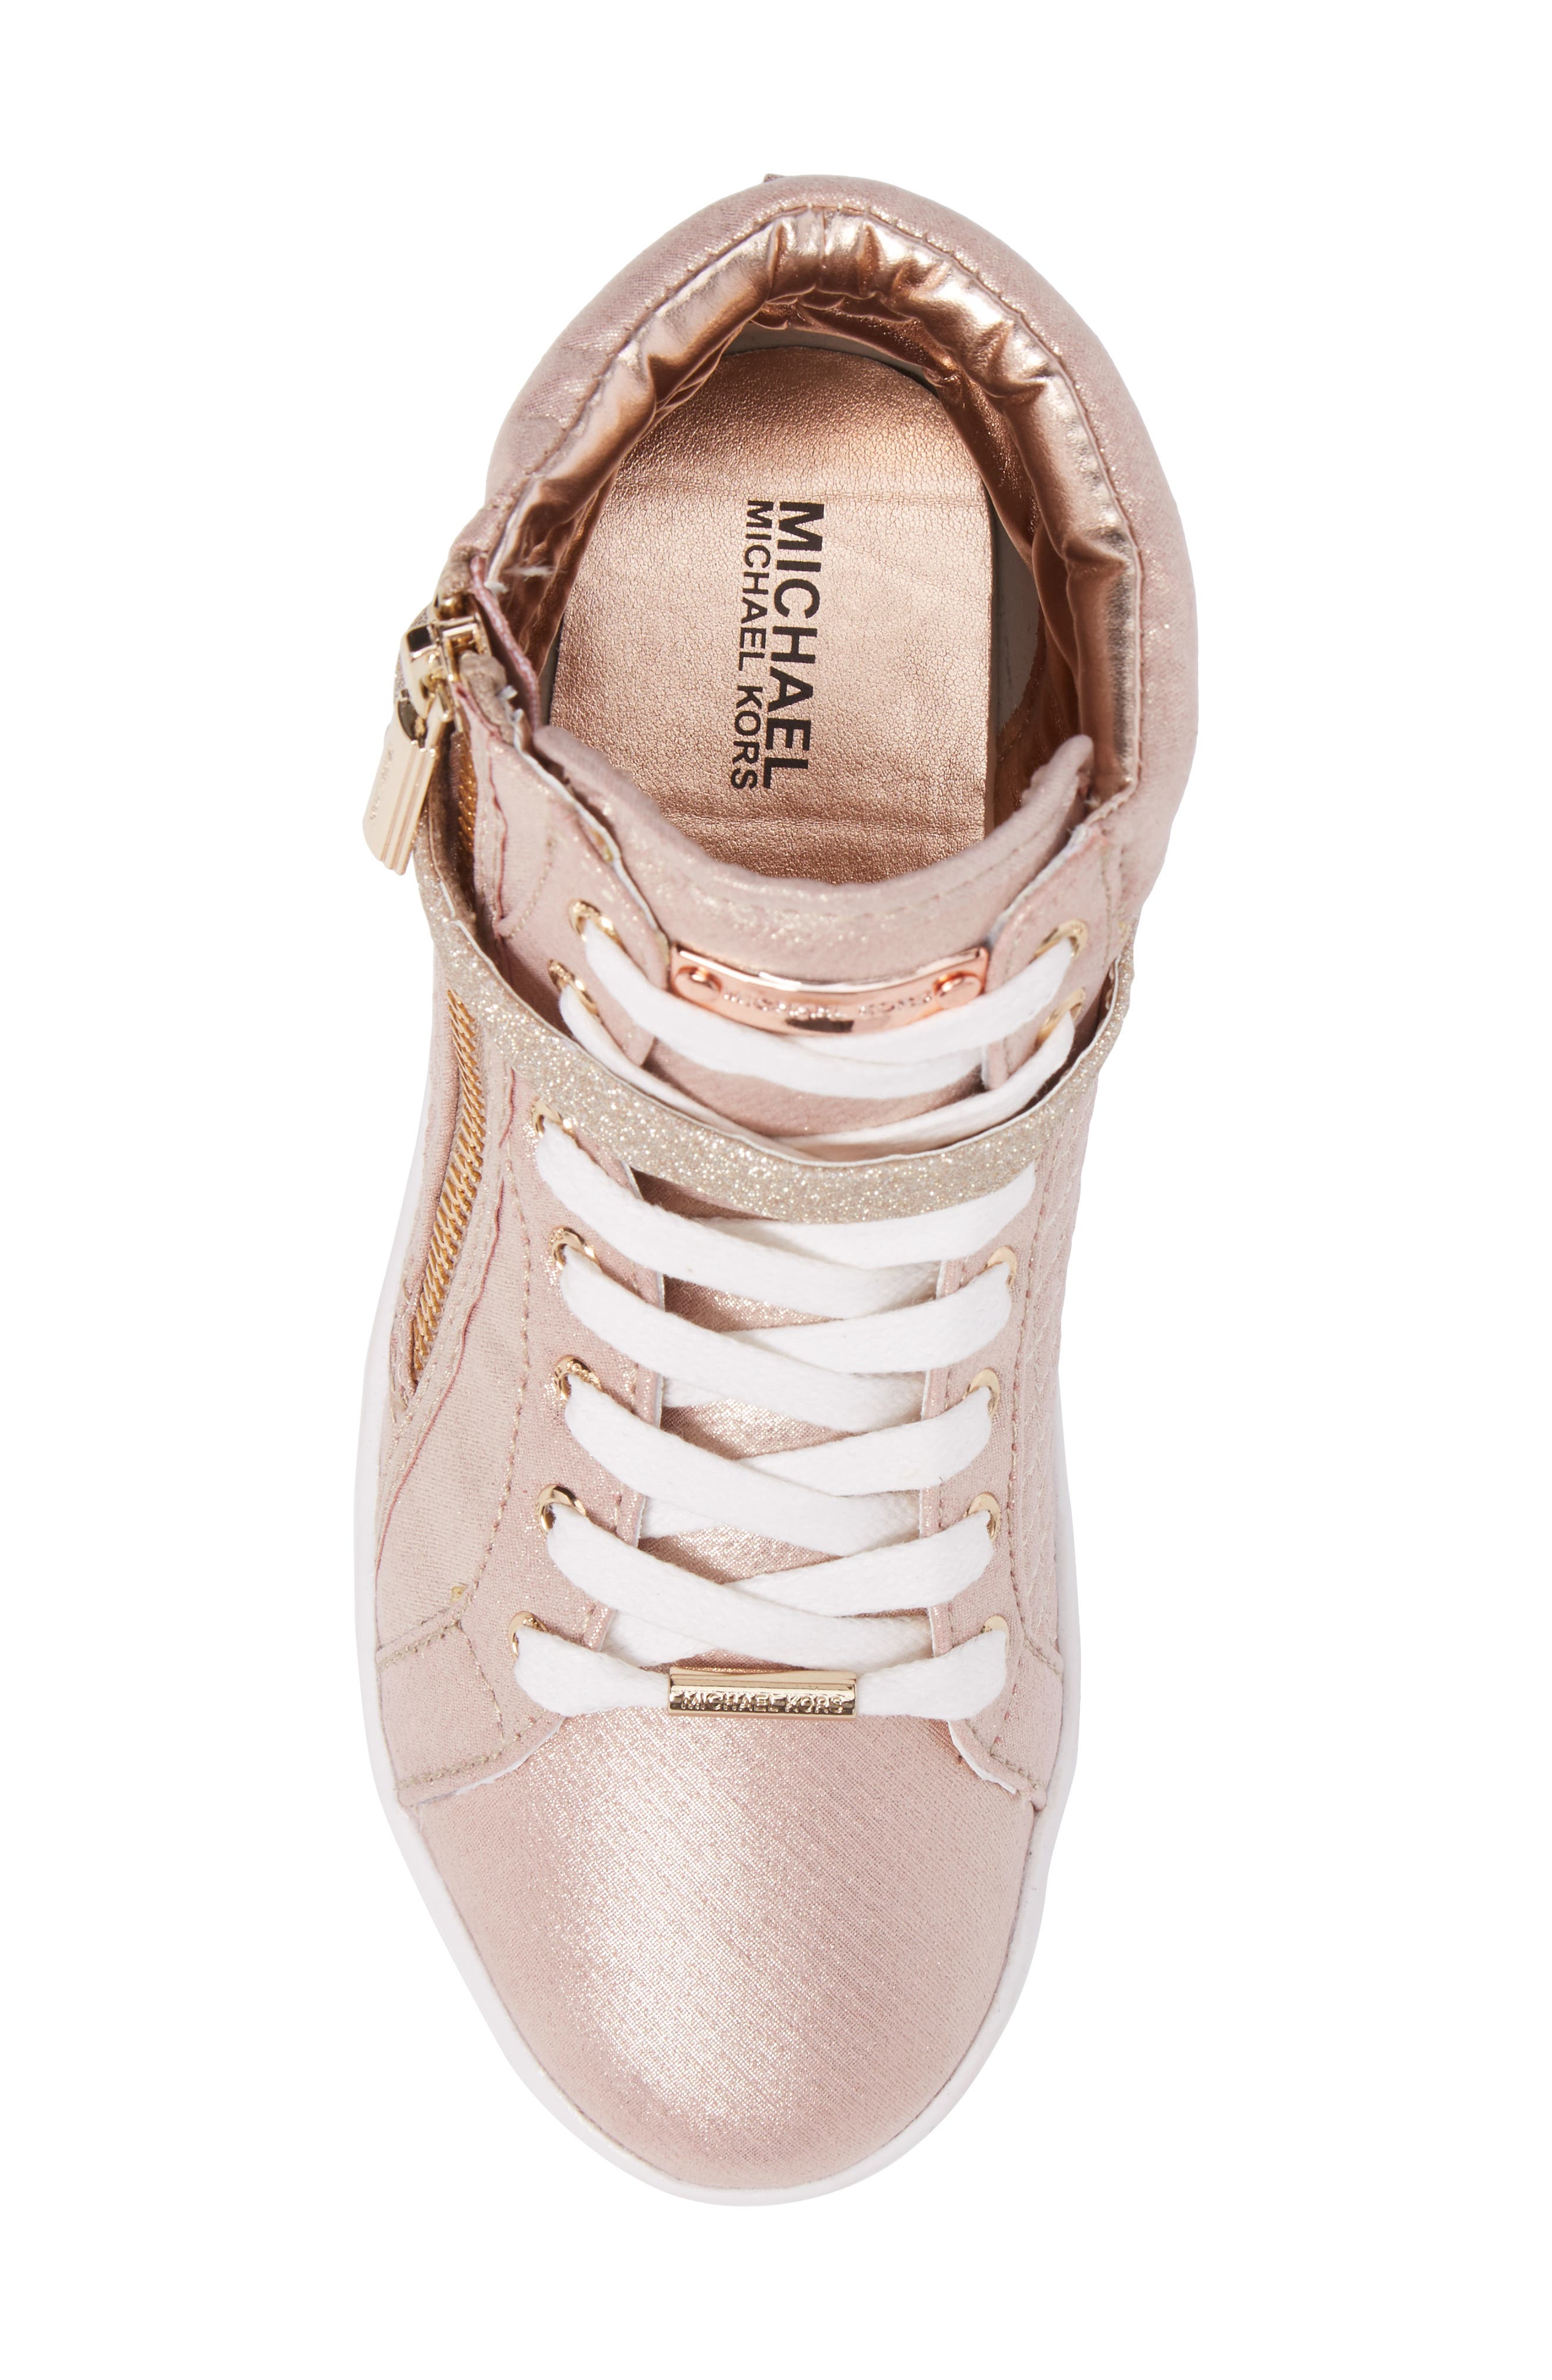 Ivy Rio Glittery High Top Sneaker,                             Alternate thumbnail 5, color,                             Rose Gold